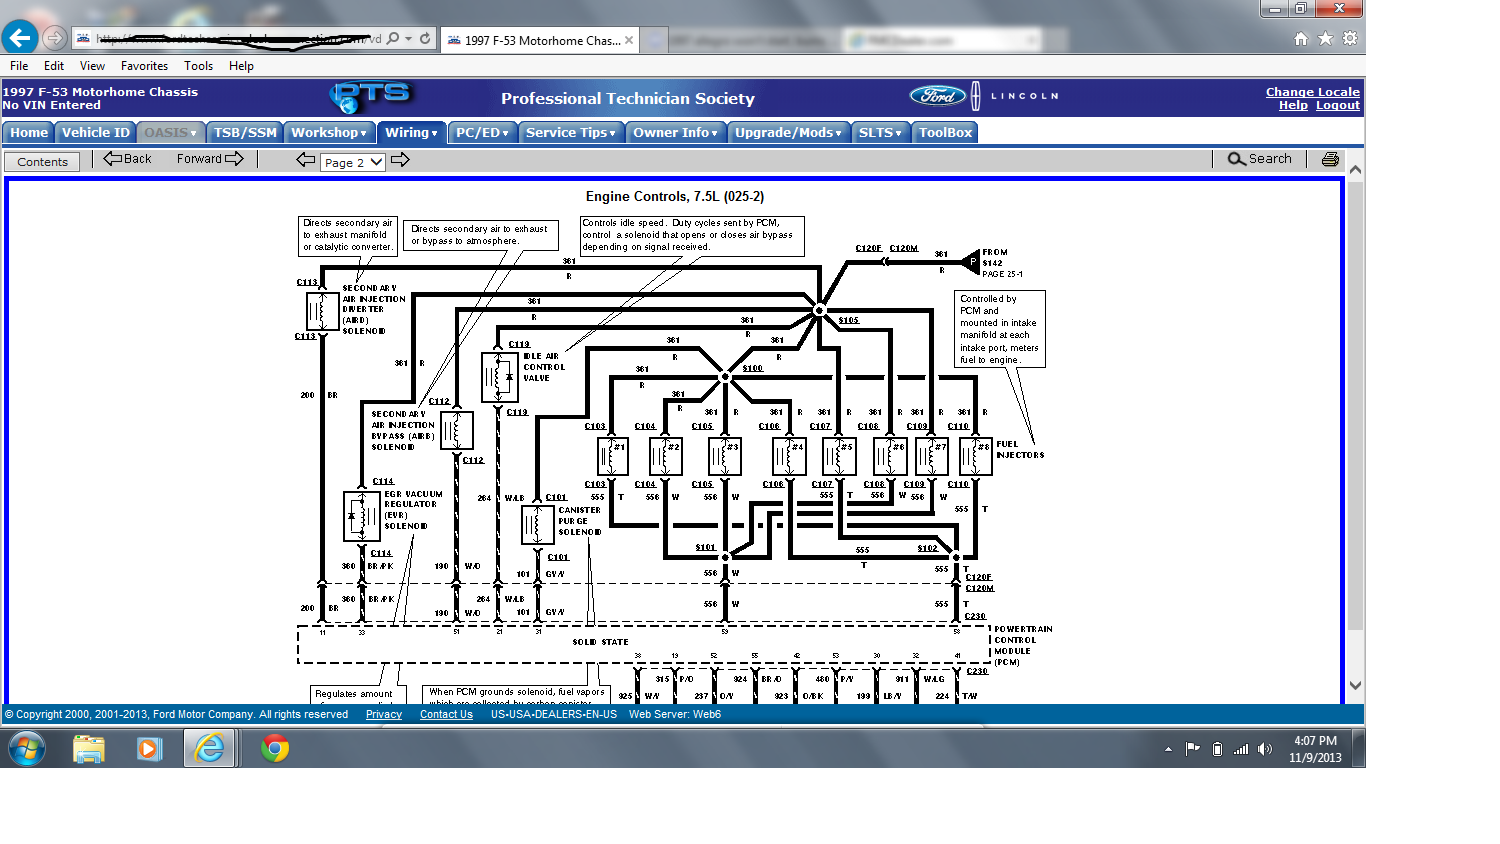 freightliner chassis wiring diagram smartdraw diagrams